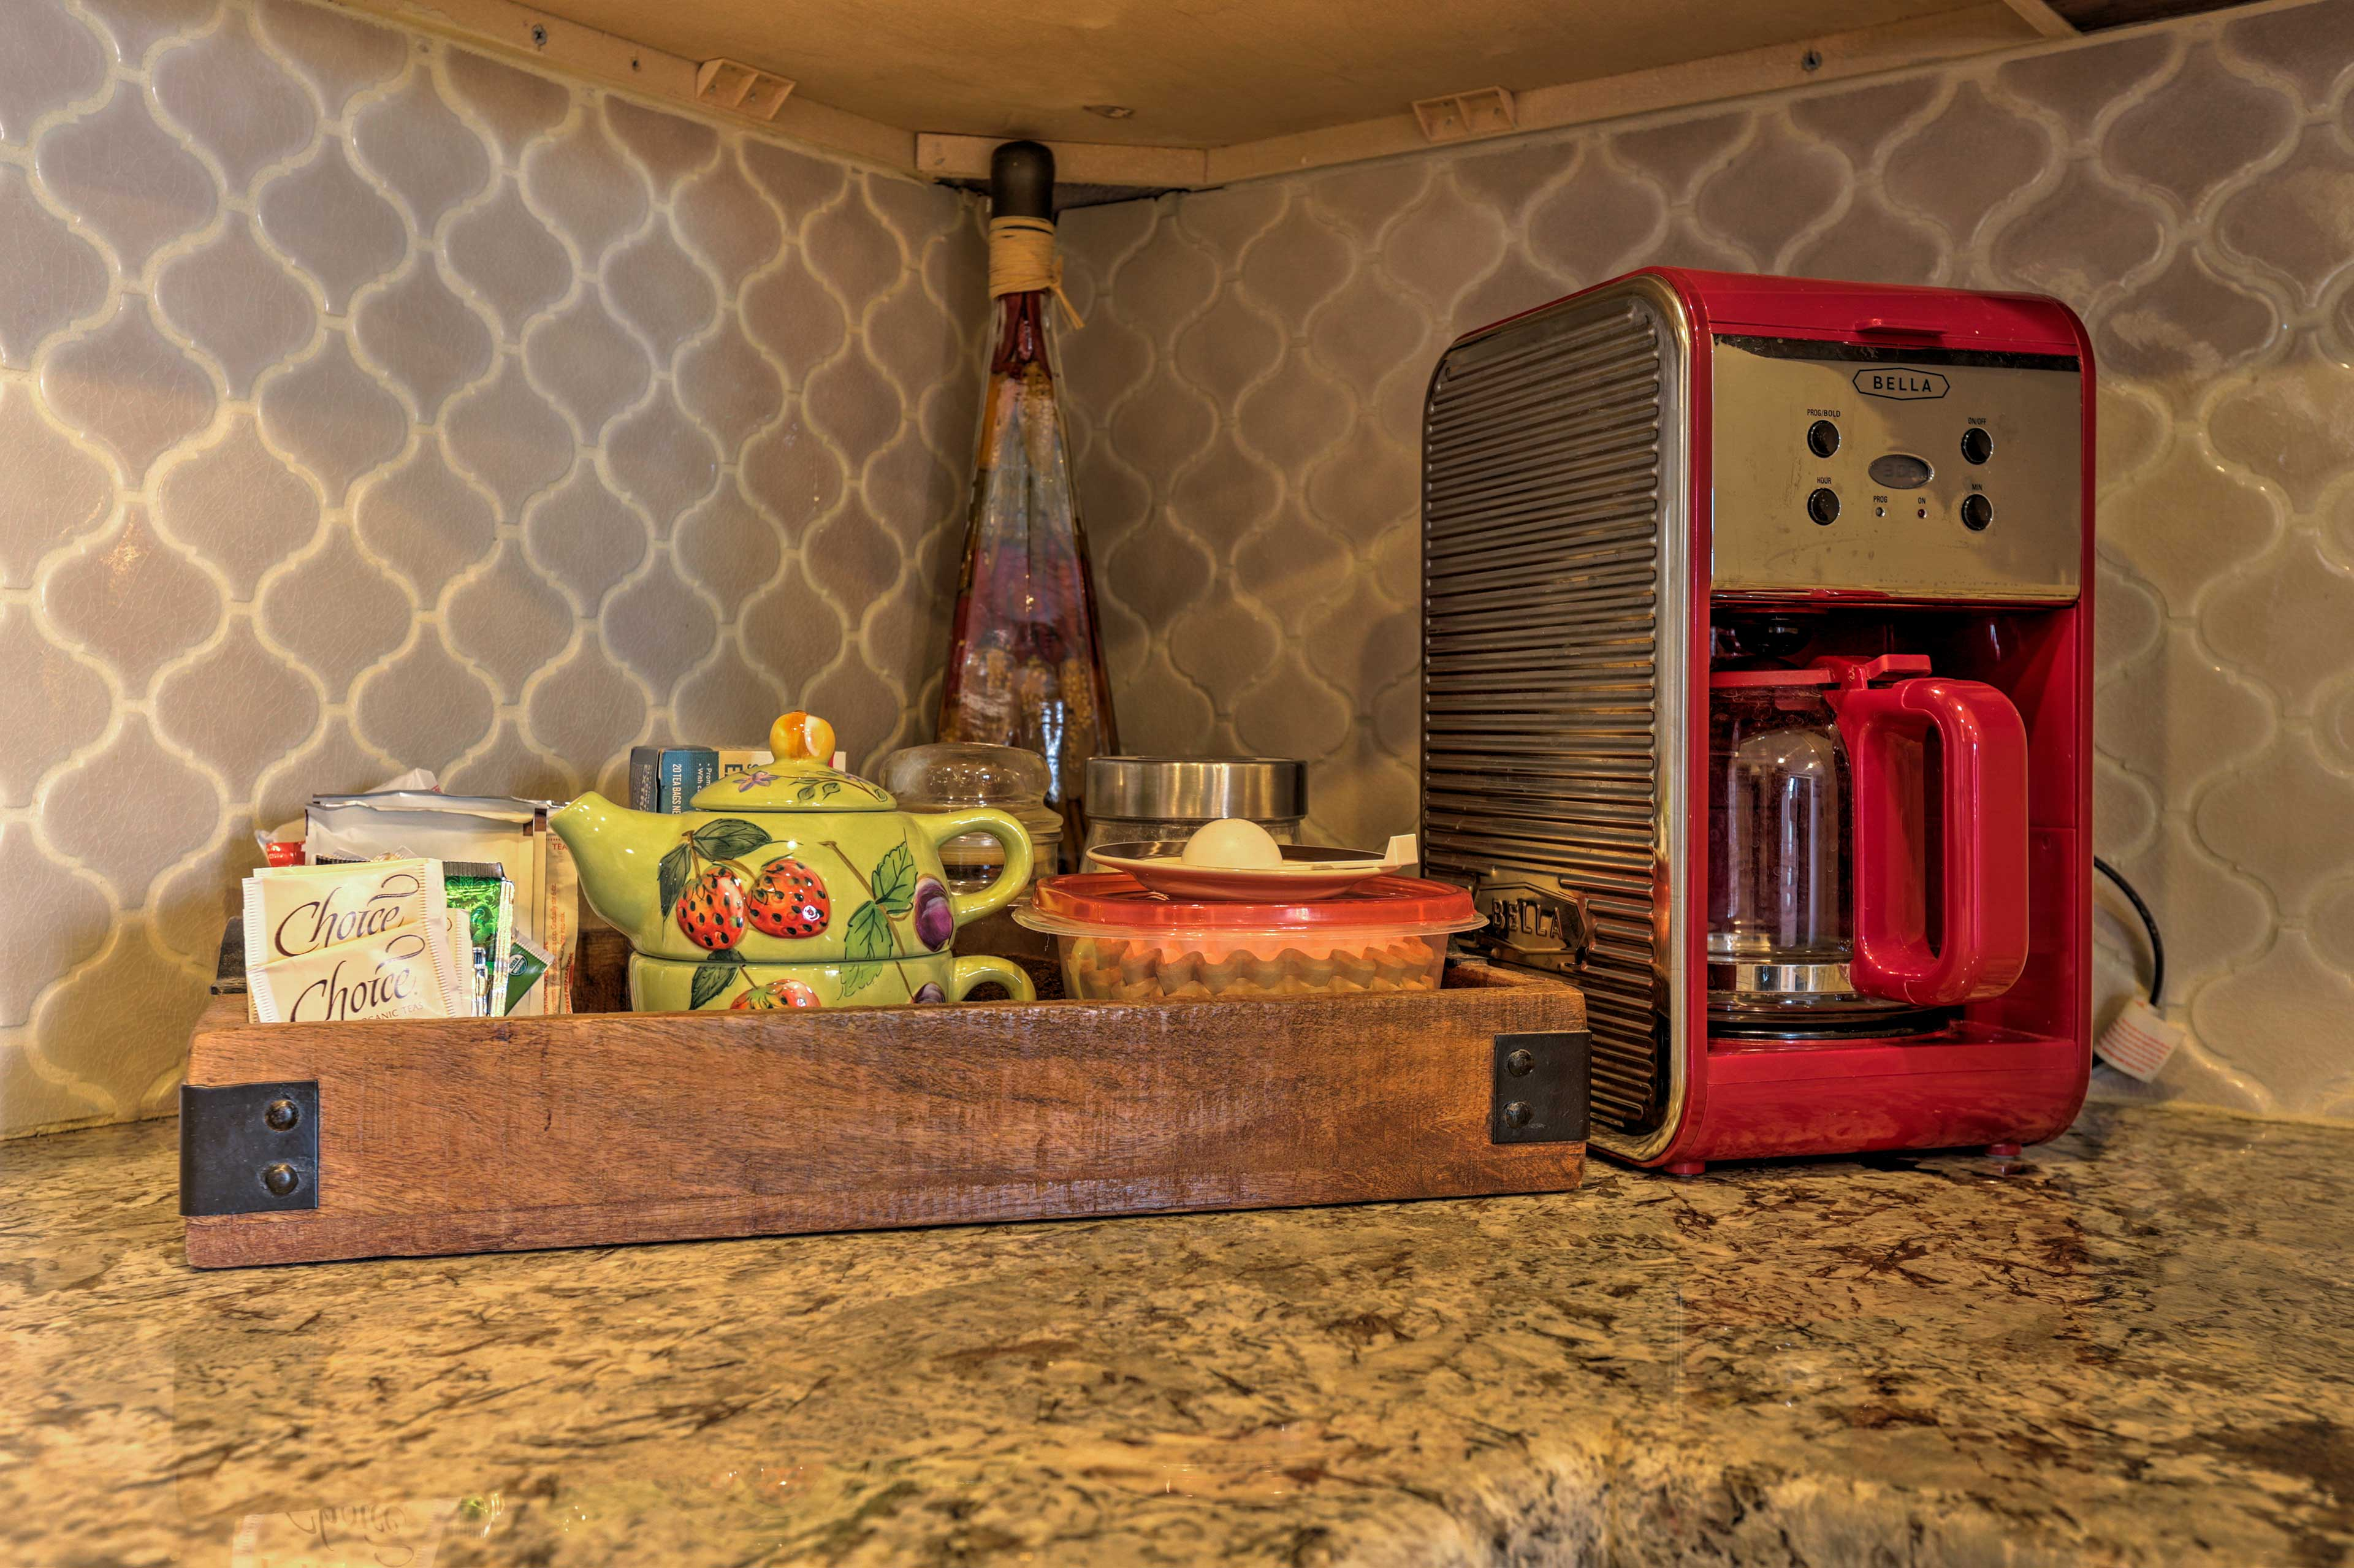 Additional appliances are sure to make you feel right at home.